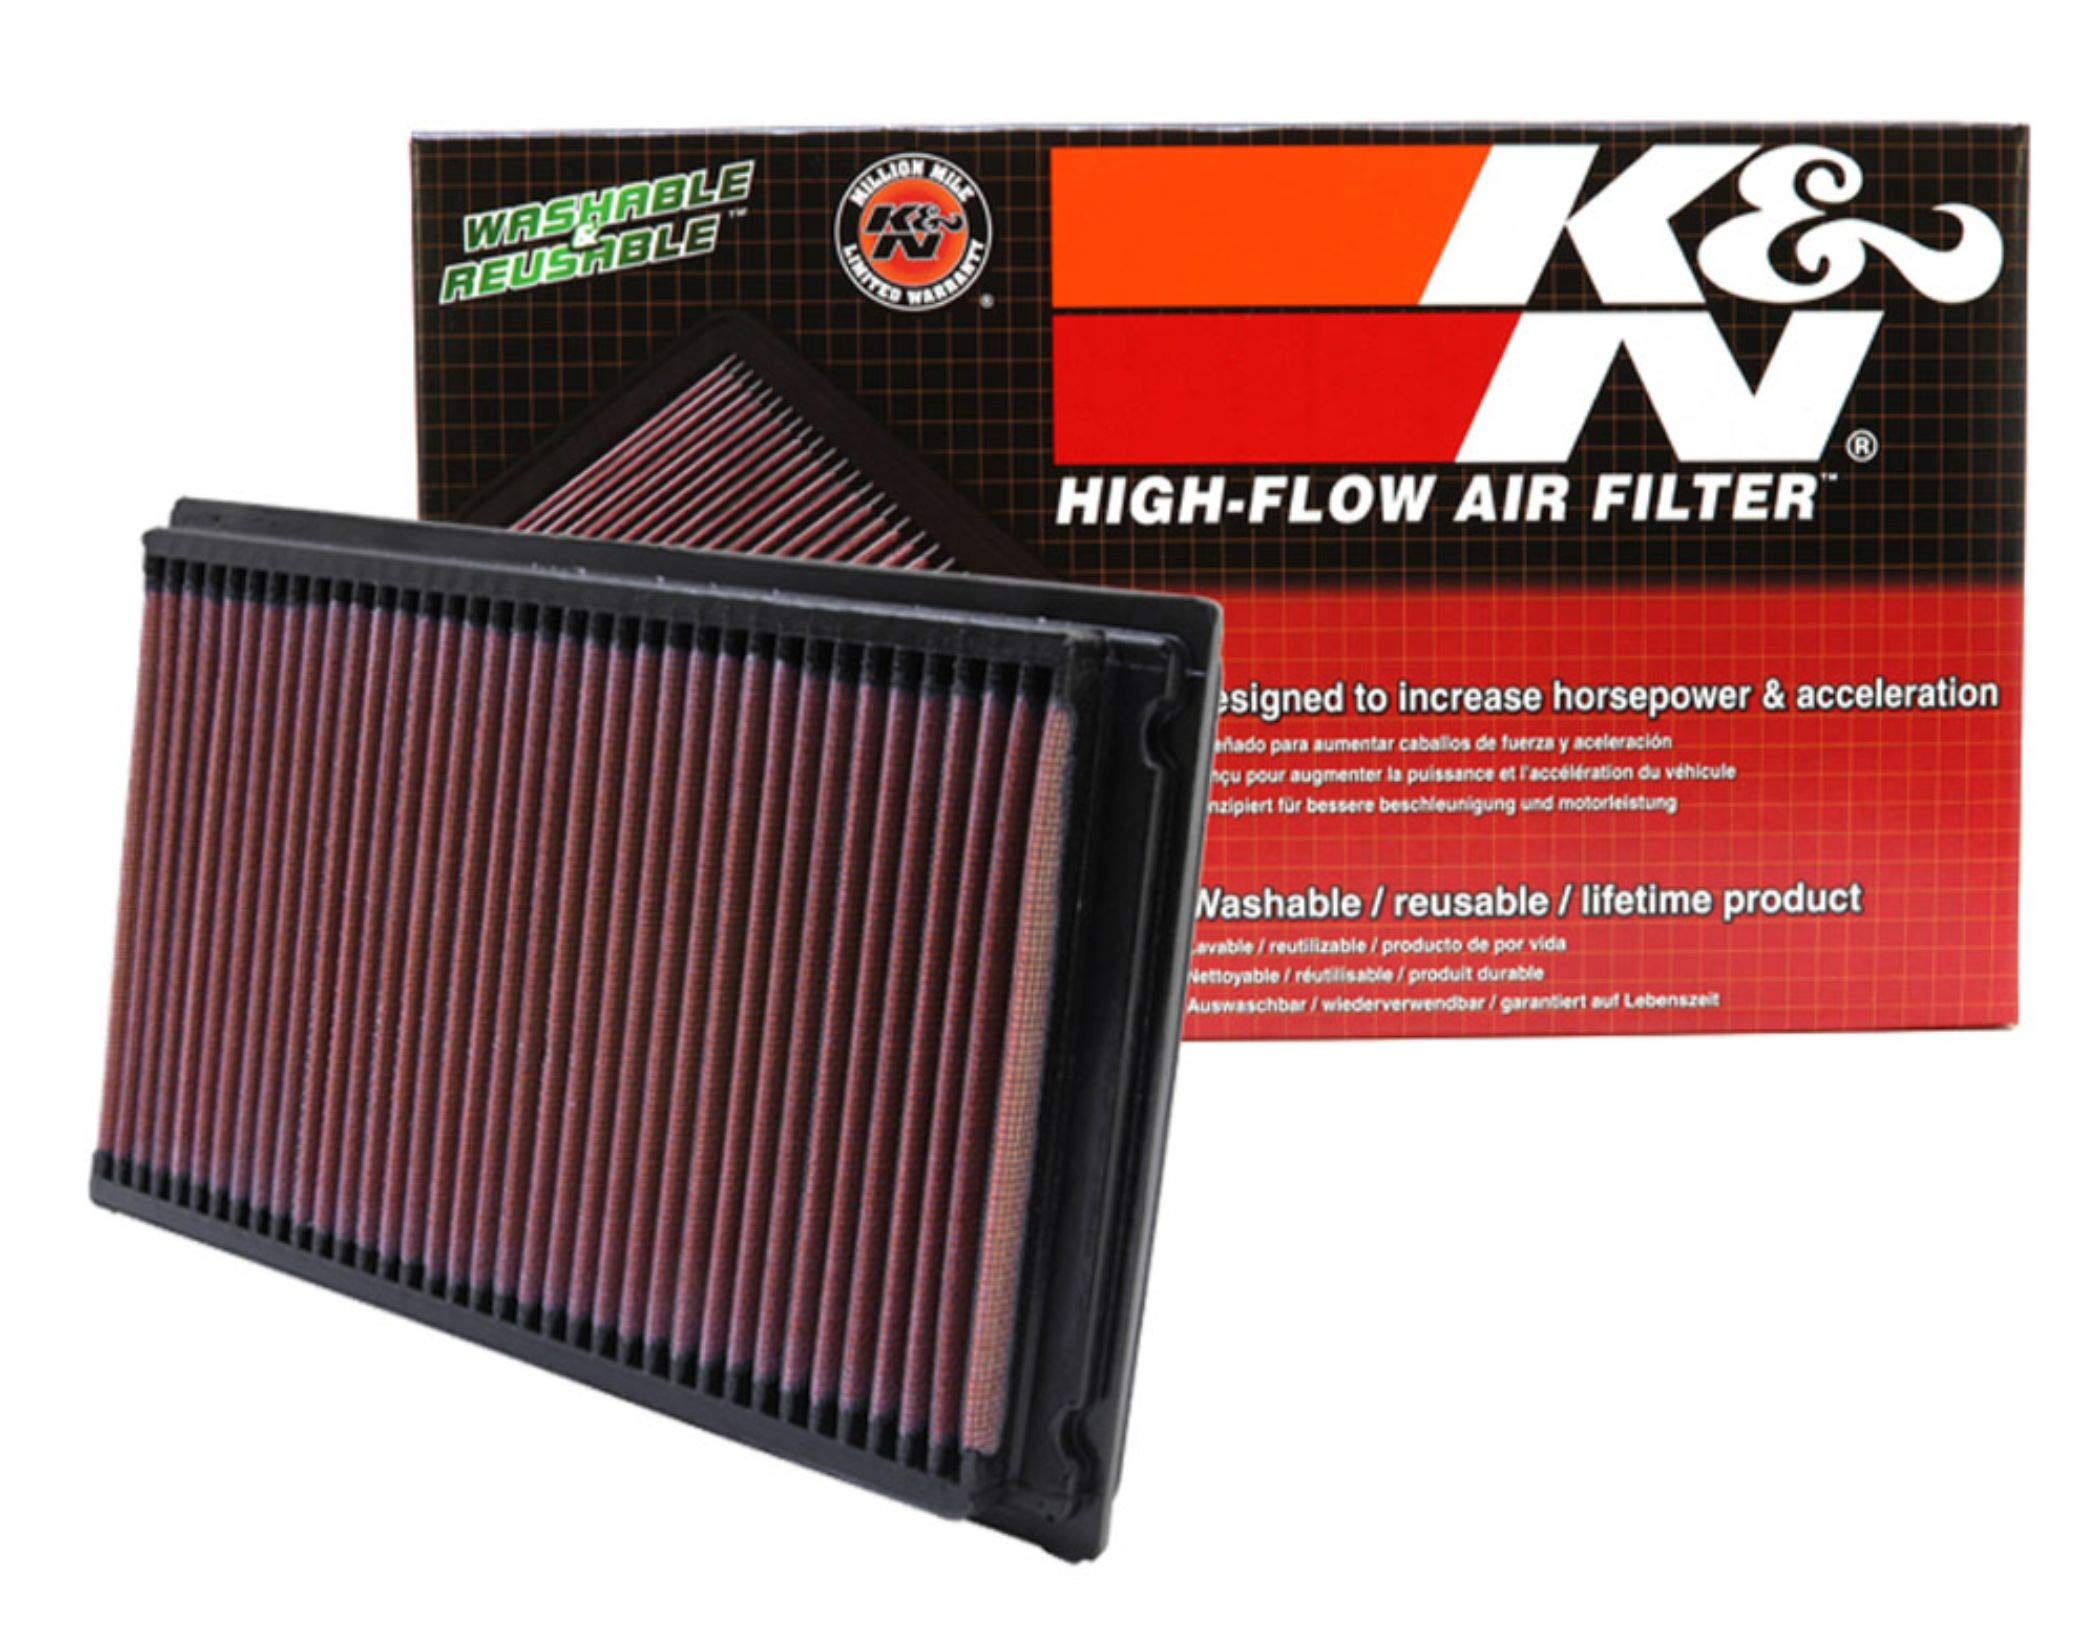 K&N engine air filter, washable and reusable:  1981-2019 Nissan/Infiniti/Renault L4/V6 (Maxima, Murano, Pathfinder, Altima, Elgrand, Quest, Terena, X-Trail, QX60, FX35) 33-2031-2 by K&N